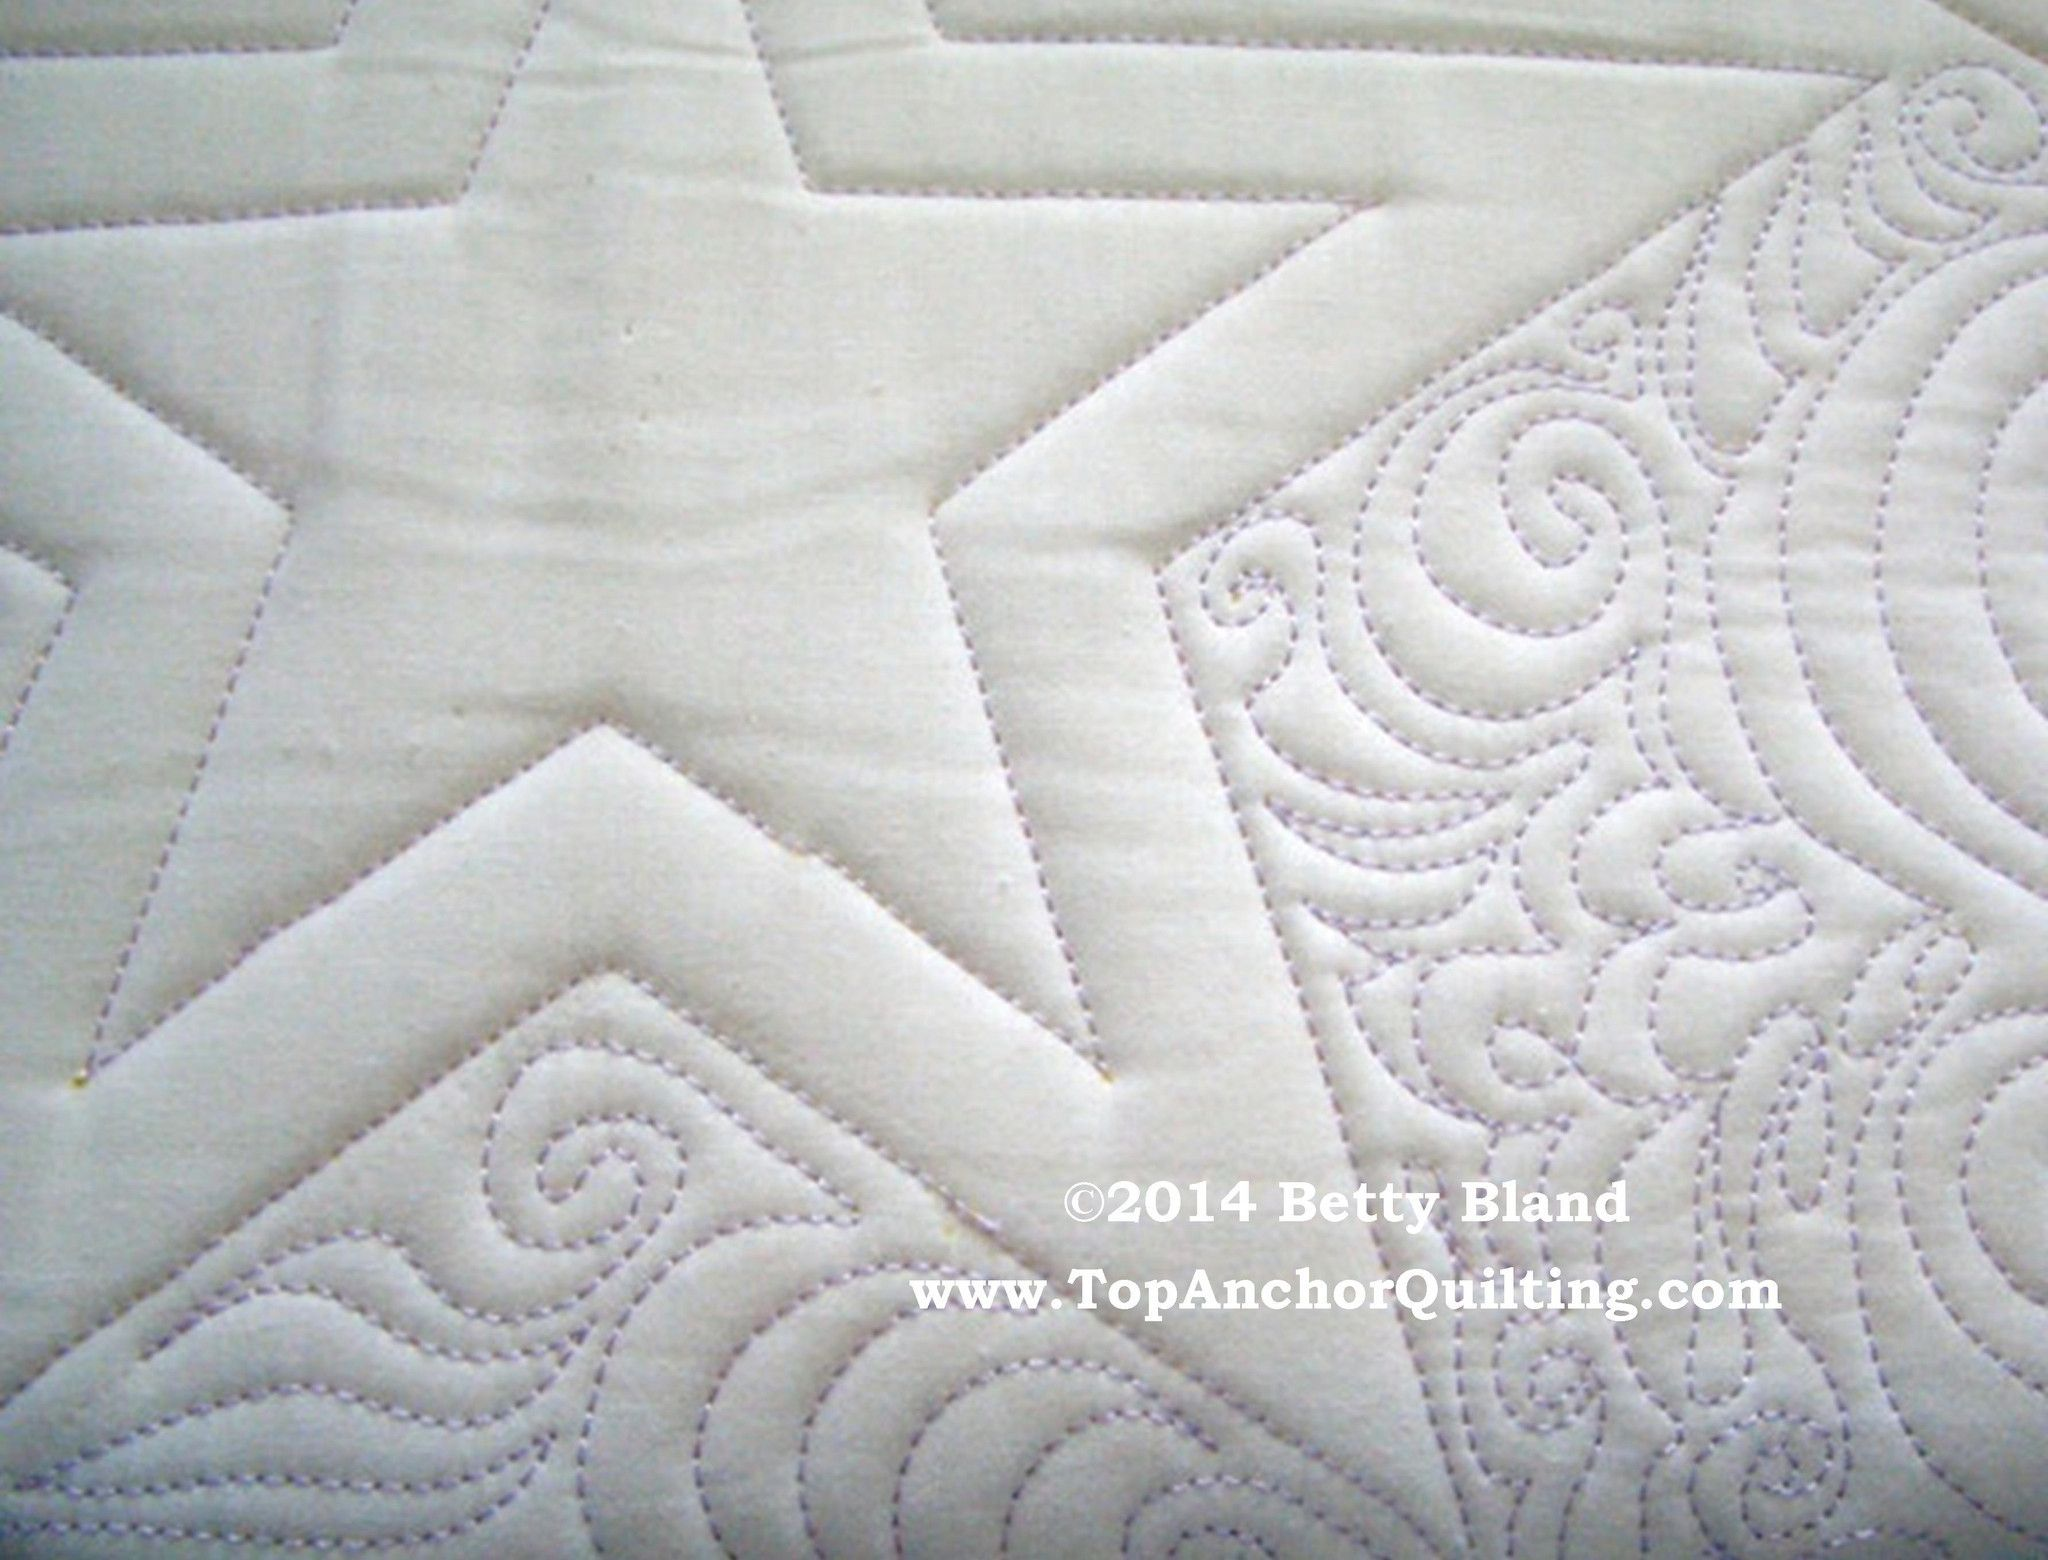 Star Machine Quilting Templates | Machine Quilting | Pinterest ...